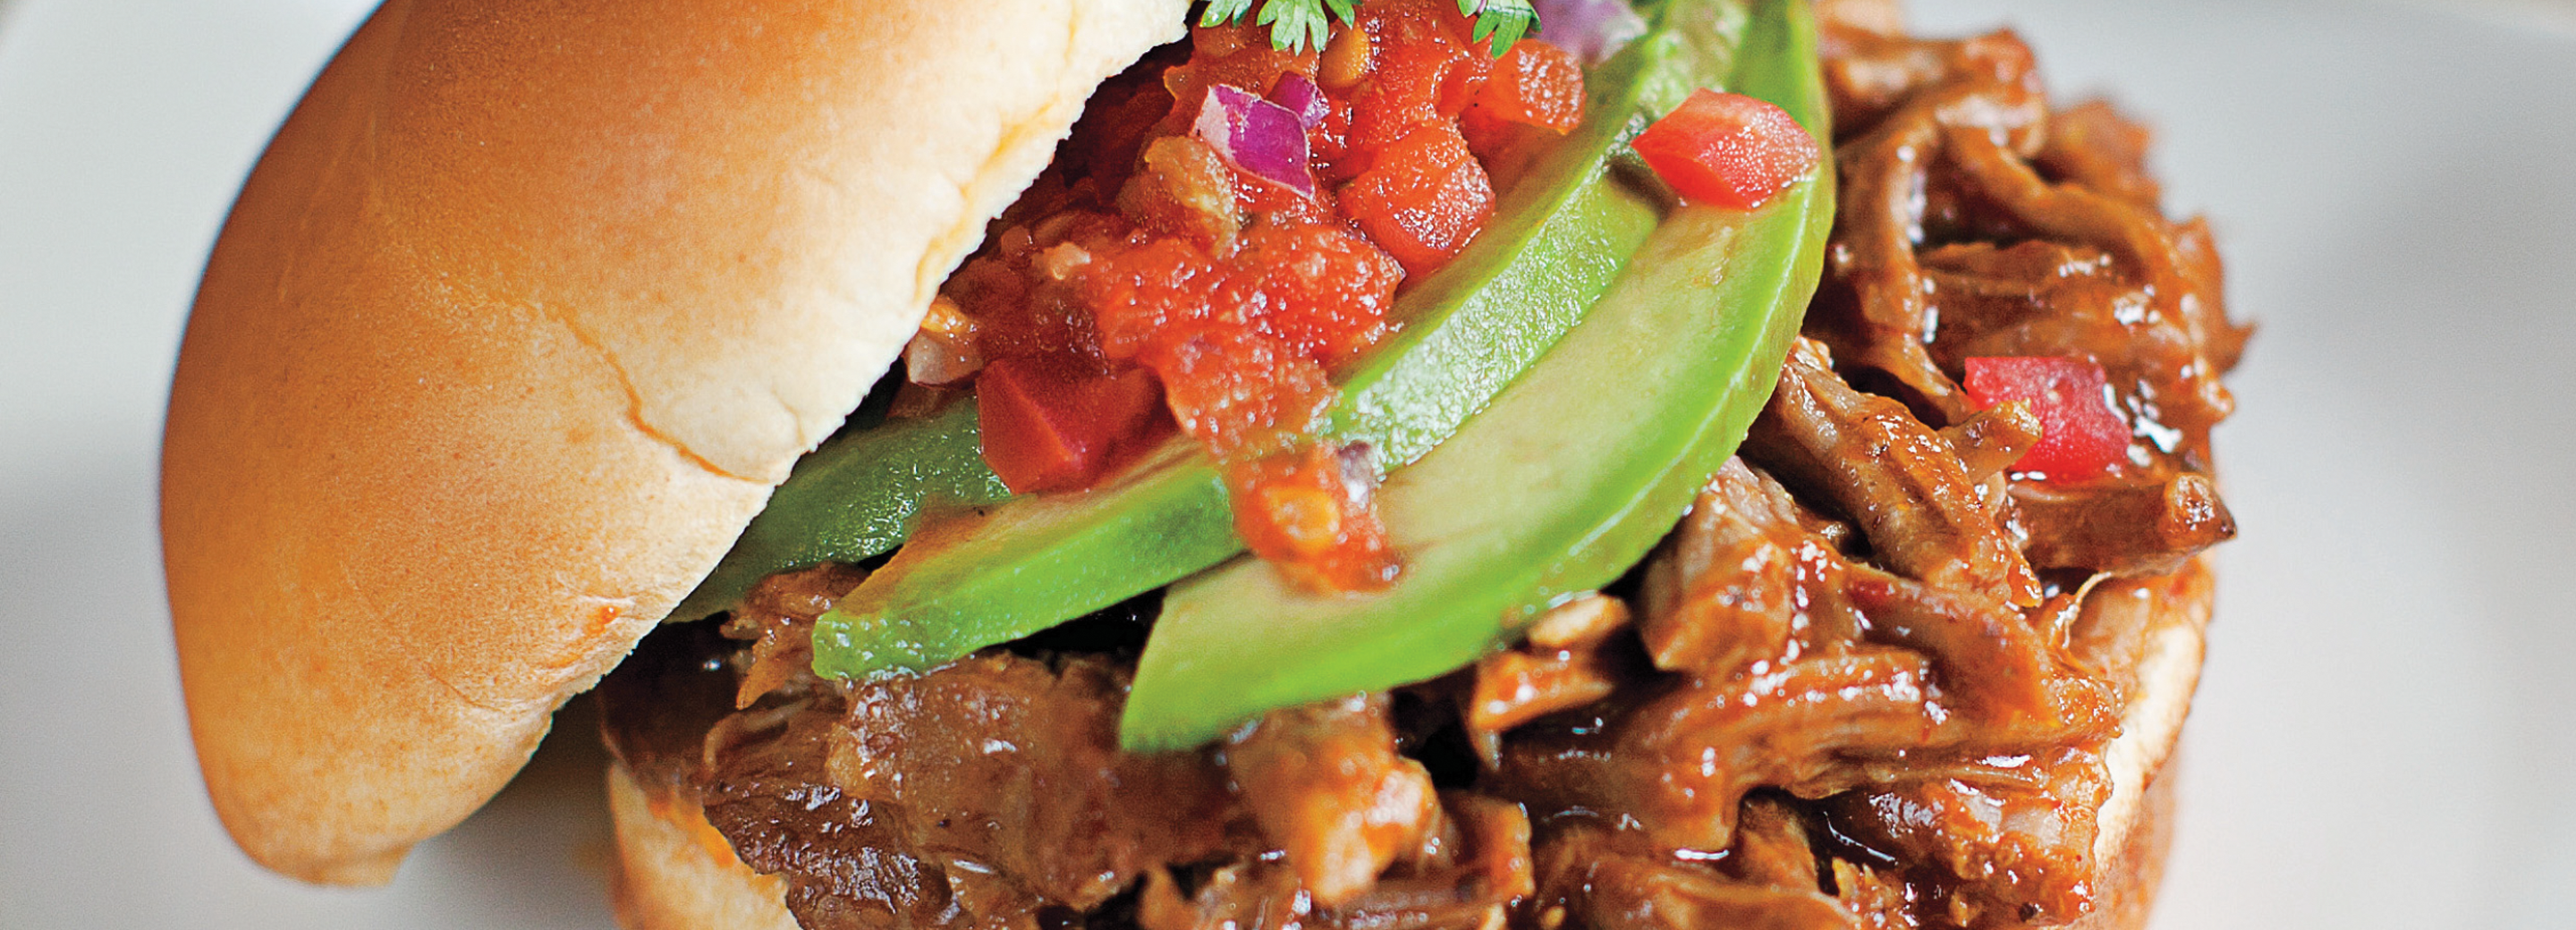 Spicy Chipotle Pulled Pork Sandwiches